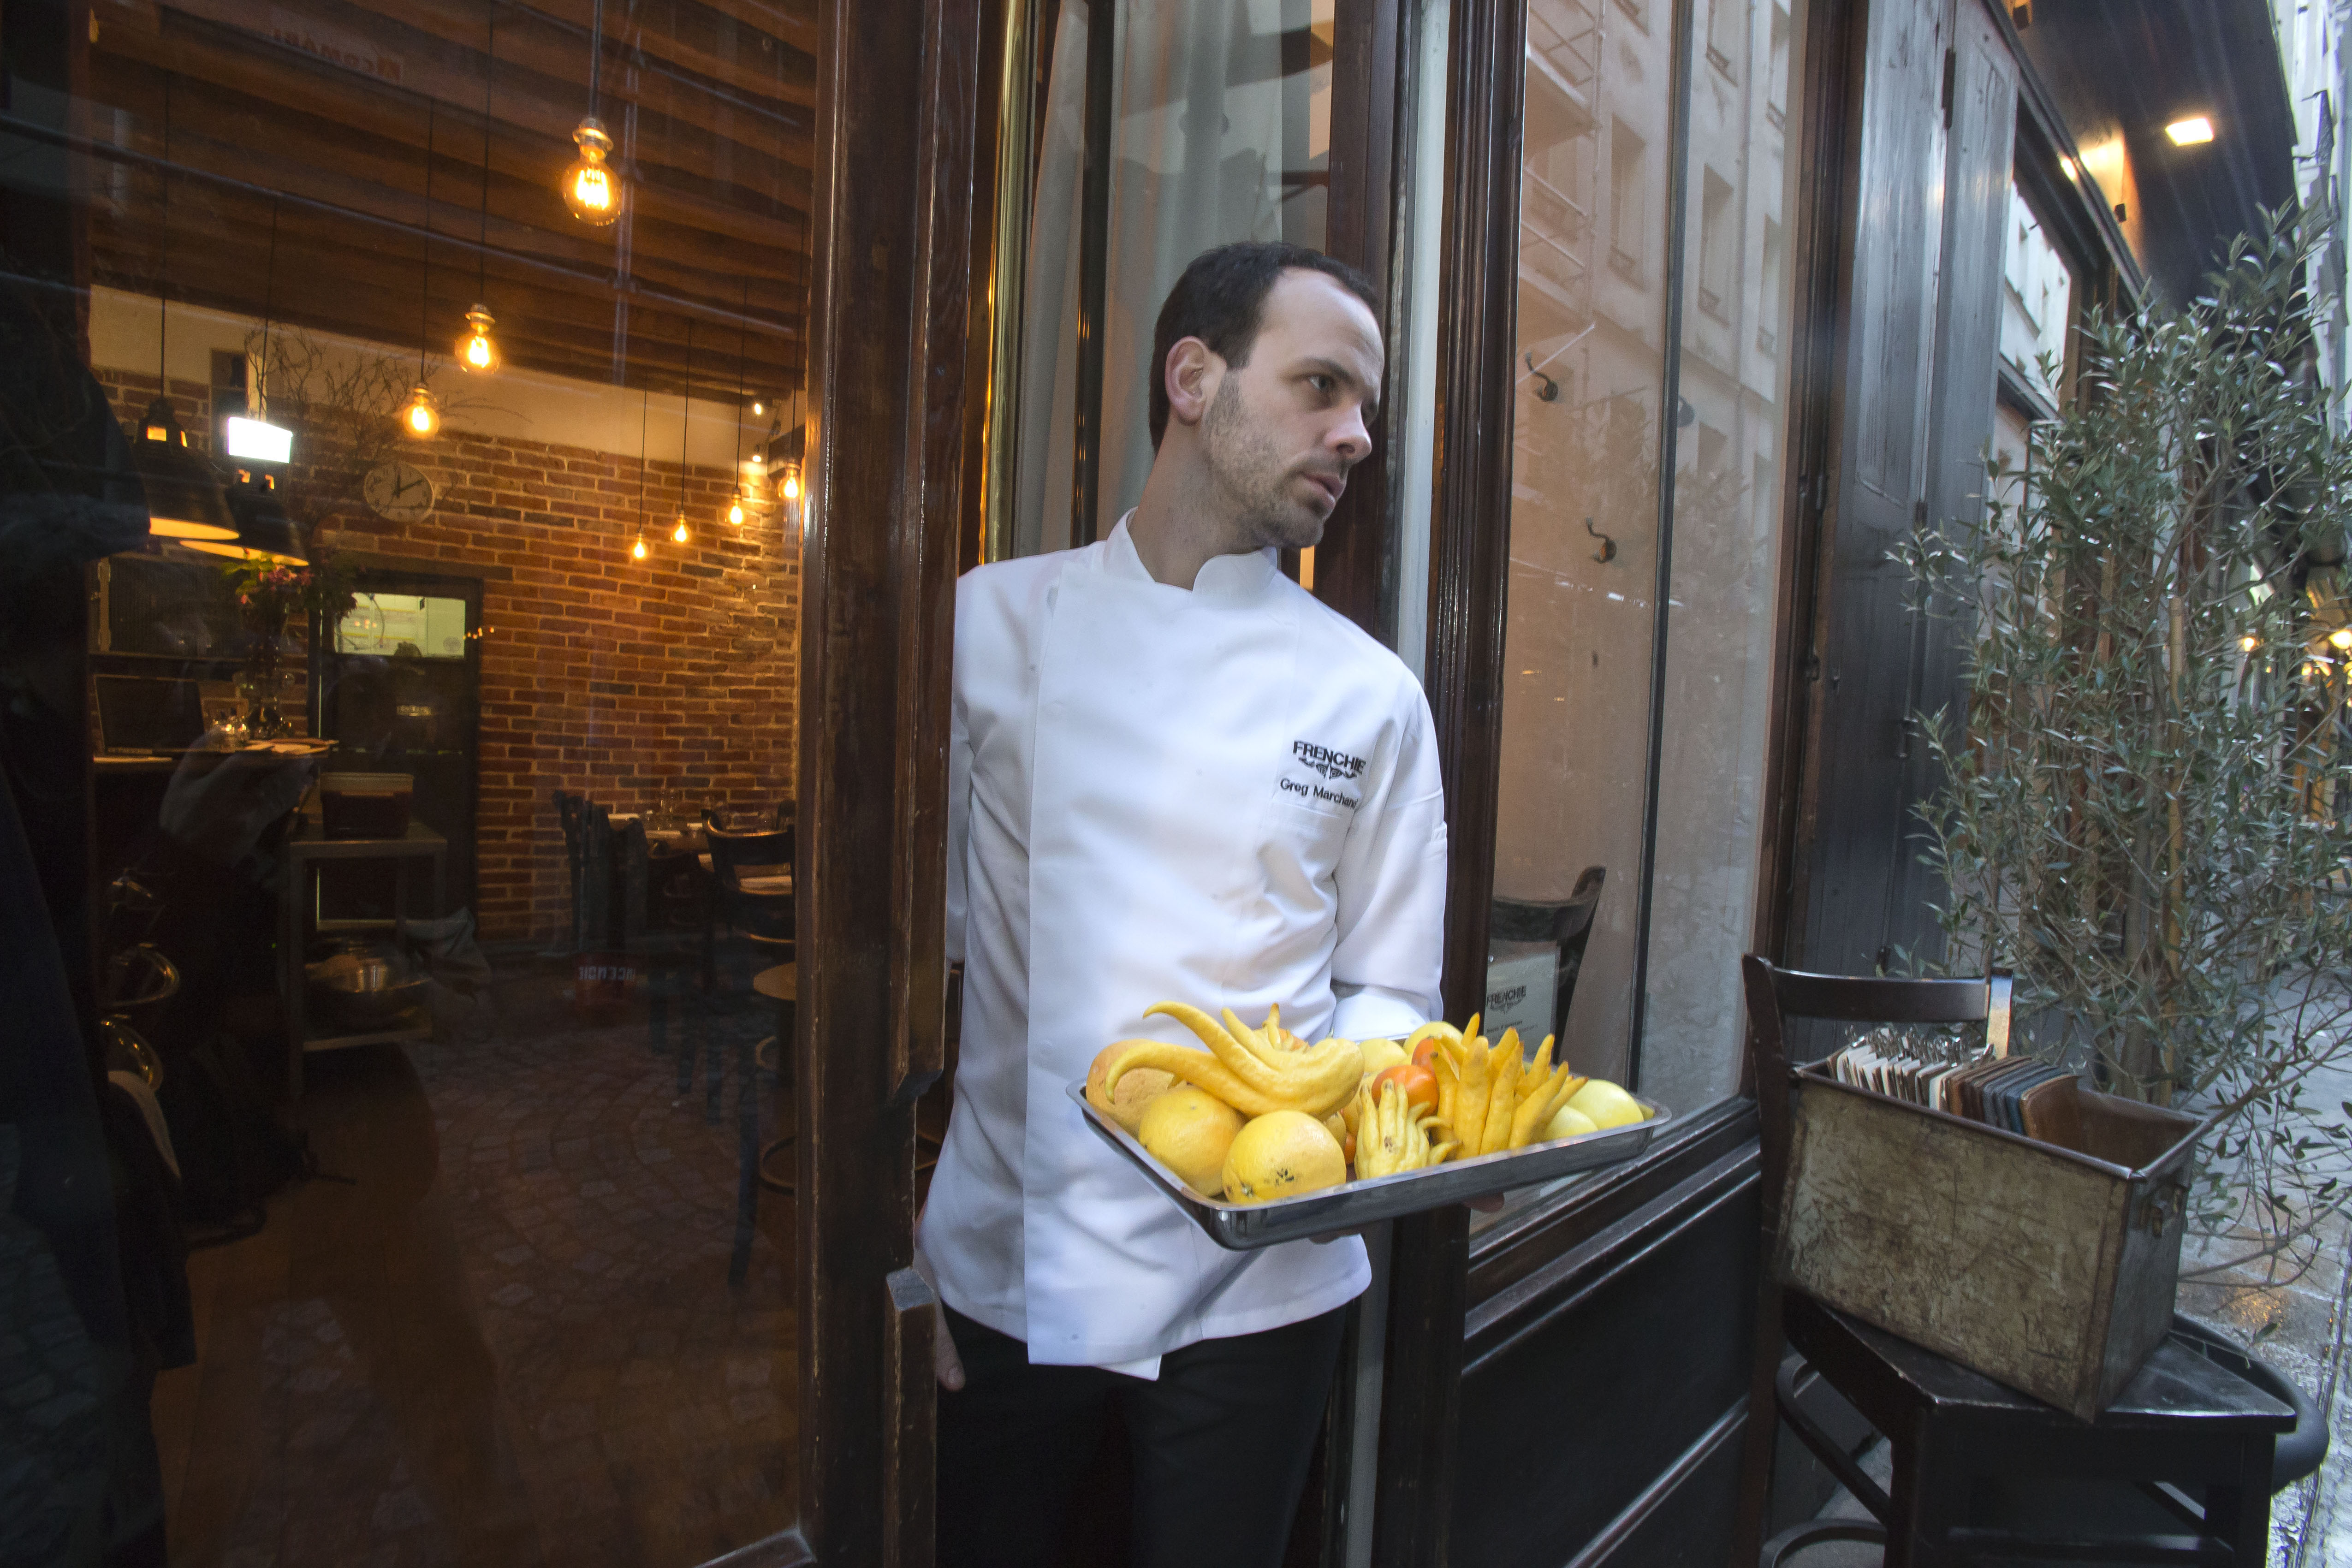 Fancy to casual: Paris sees a shift in food, dining